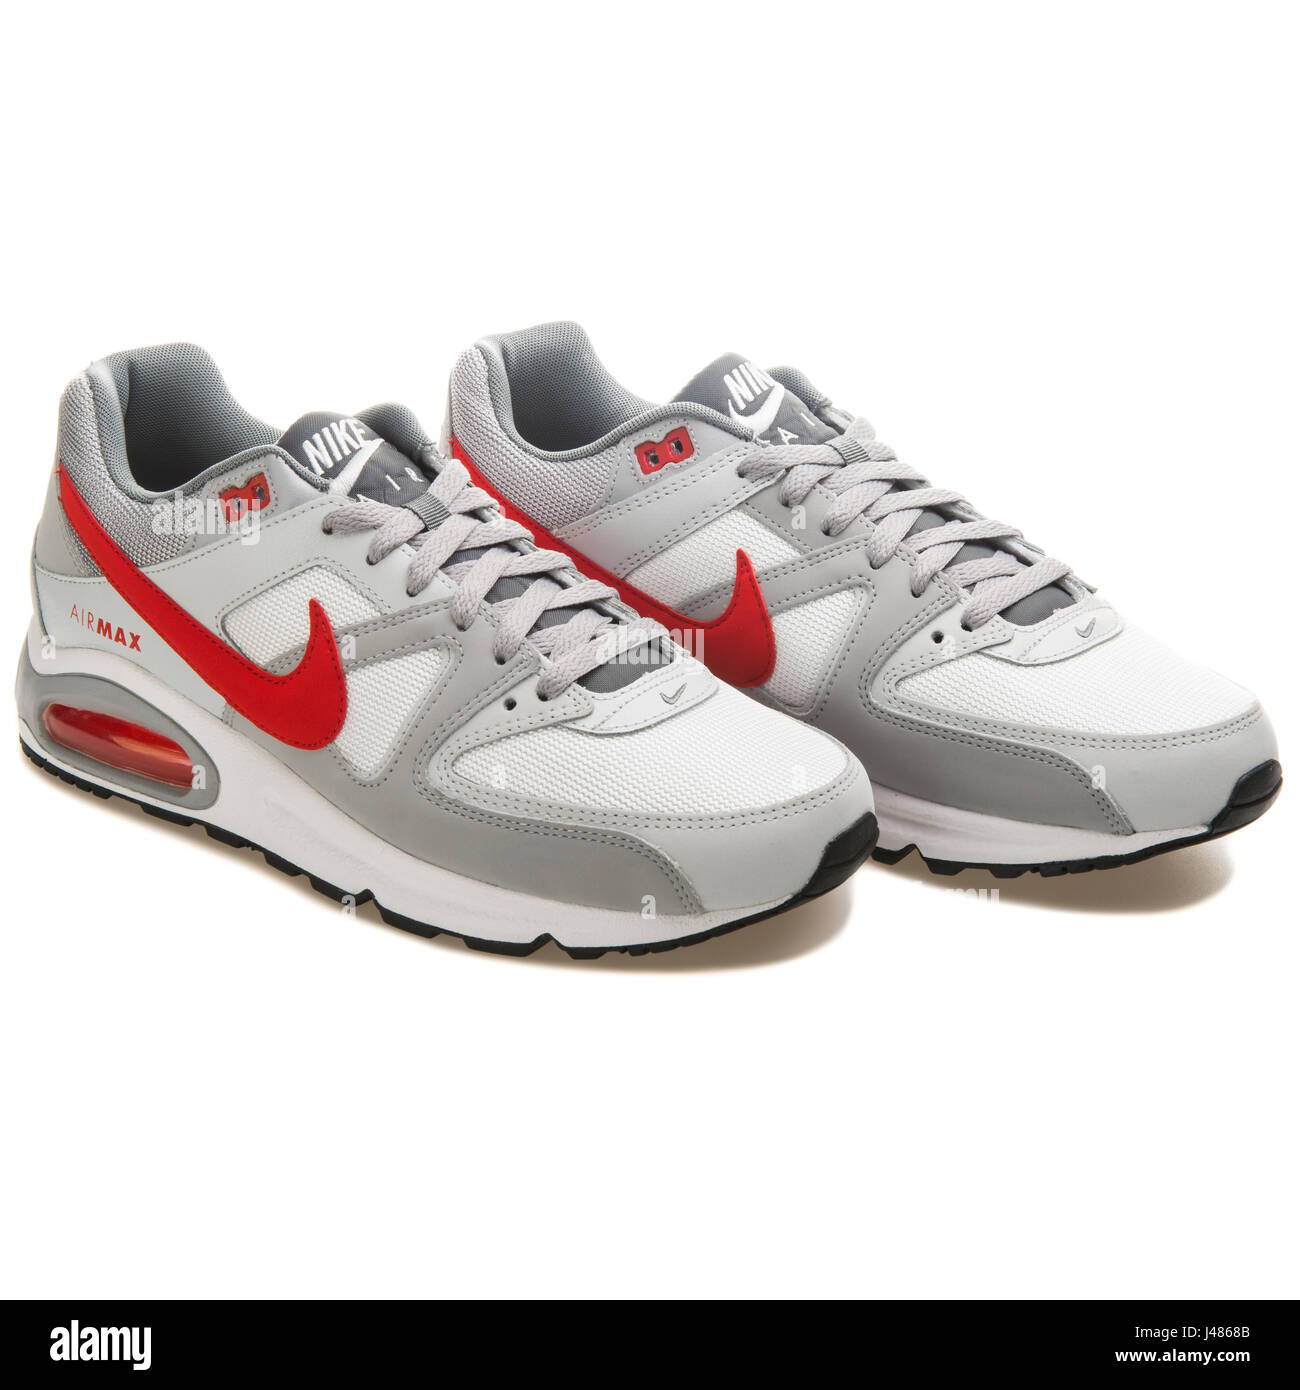 Nike Air Max Command 629993 106 Stock Photo: 140322123 Alamy